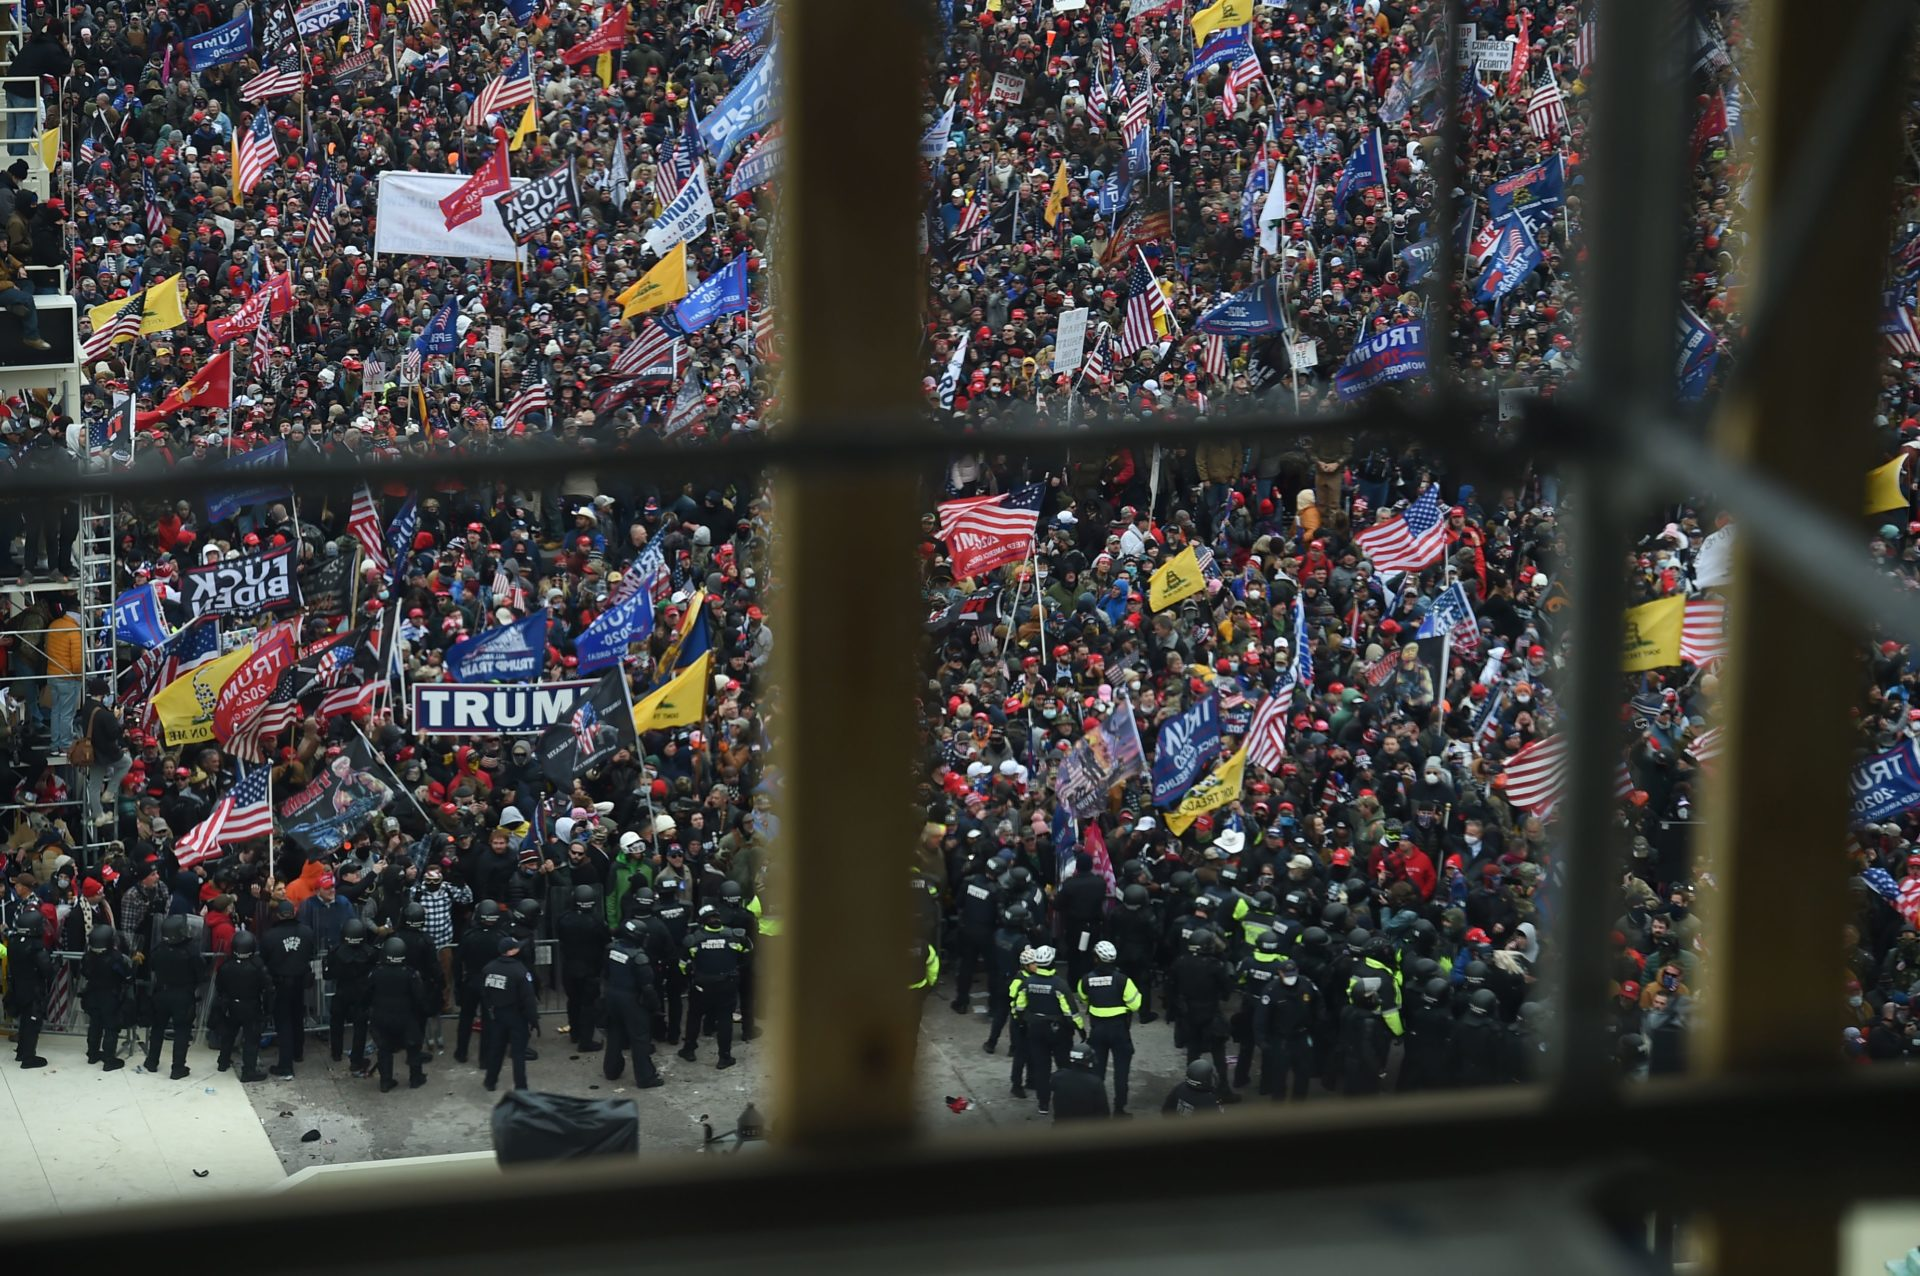 Supporters of President Donald Trump gather outside the Capitol's Rotunda. (Olivier Douliery/AFP via Getty Images)